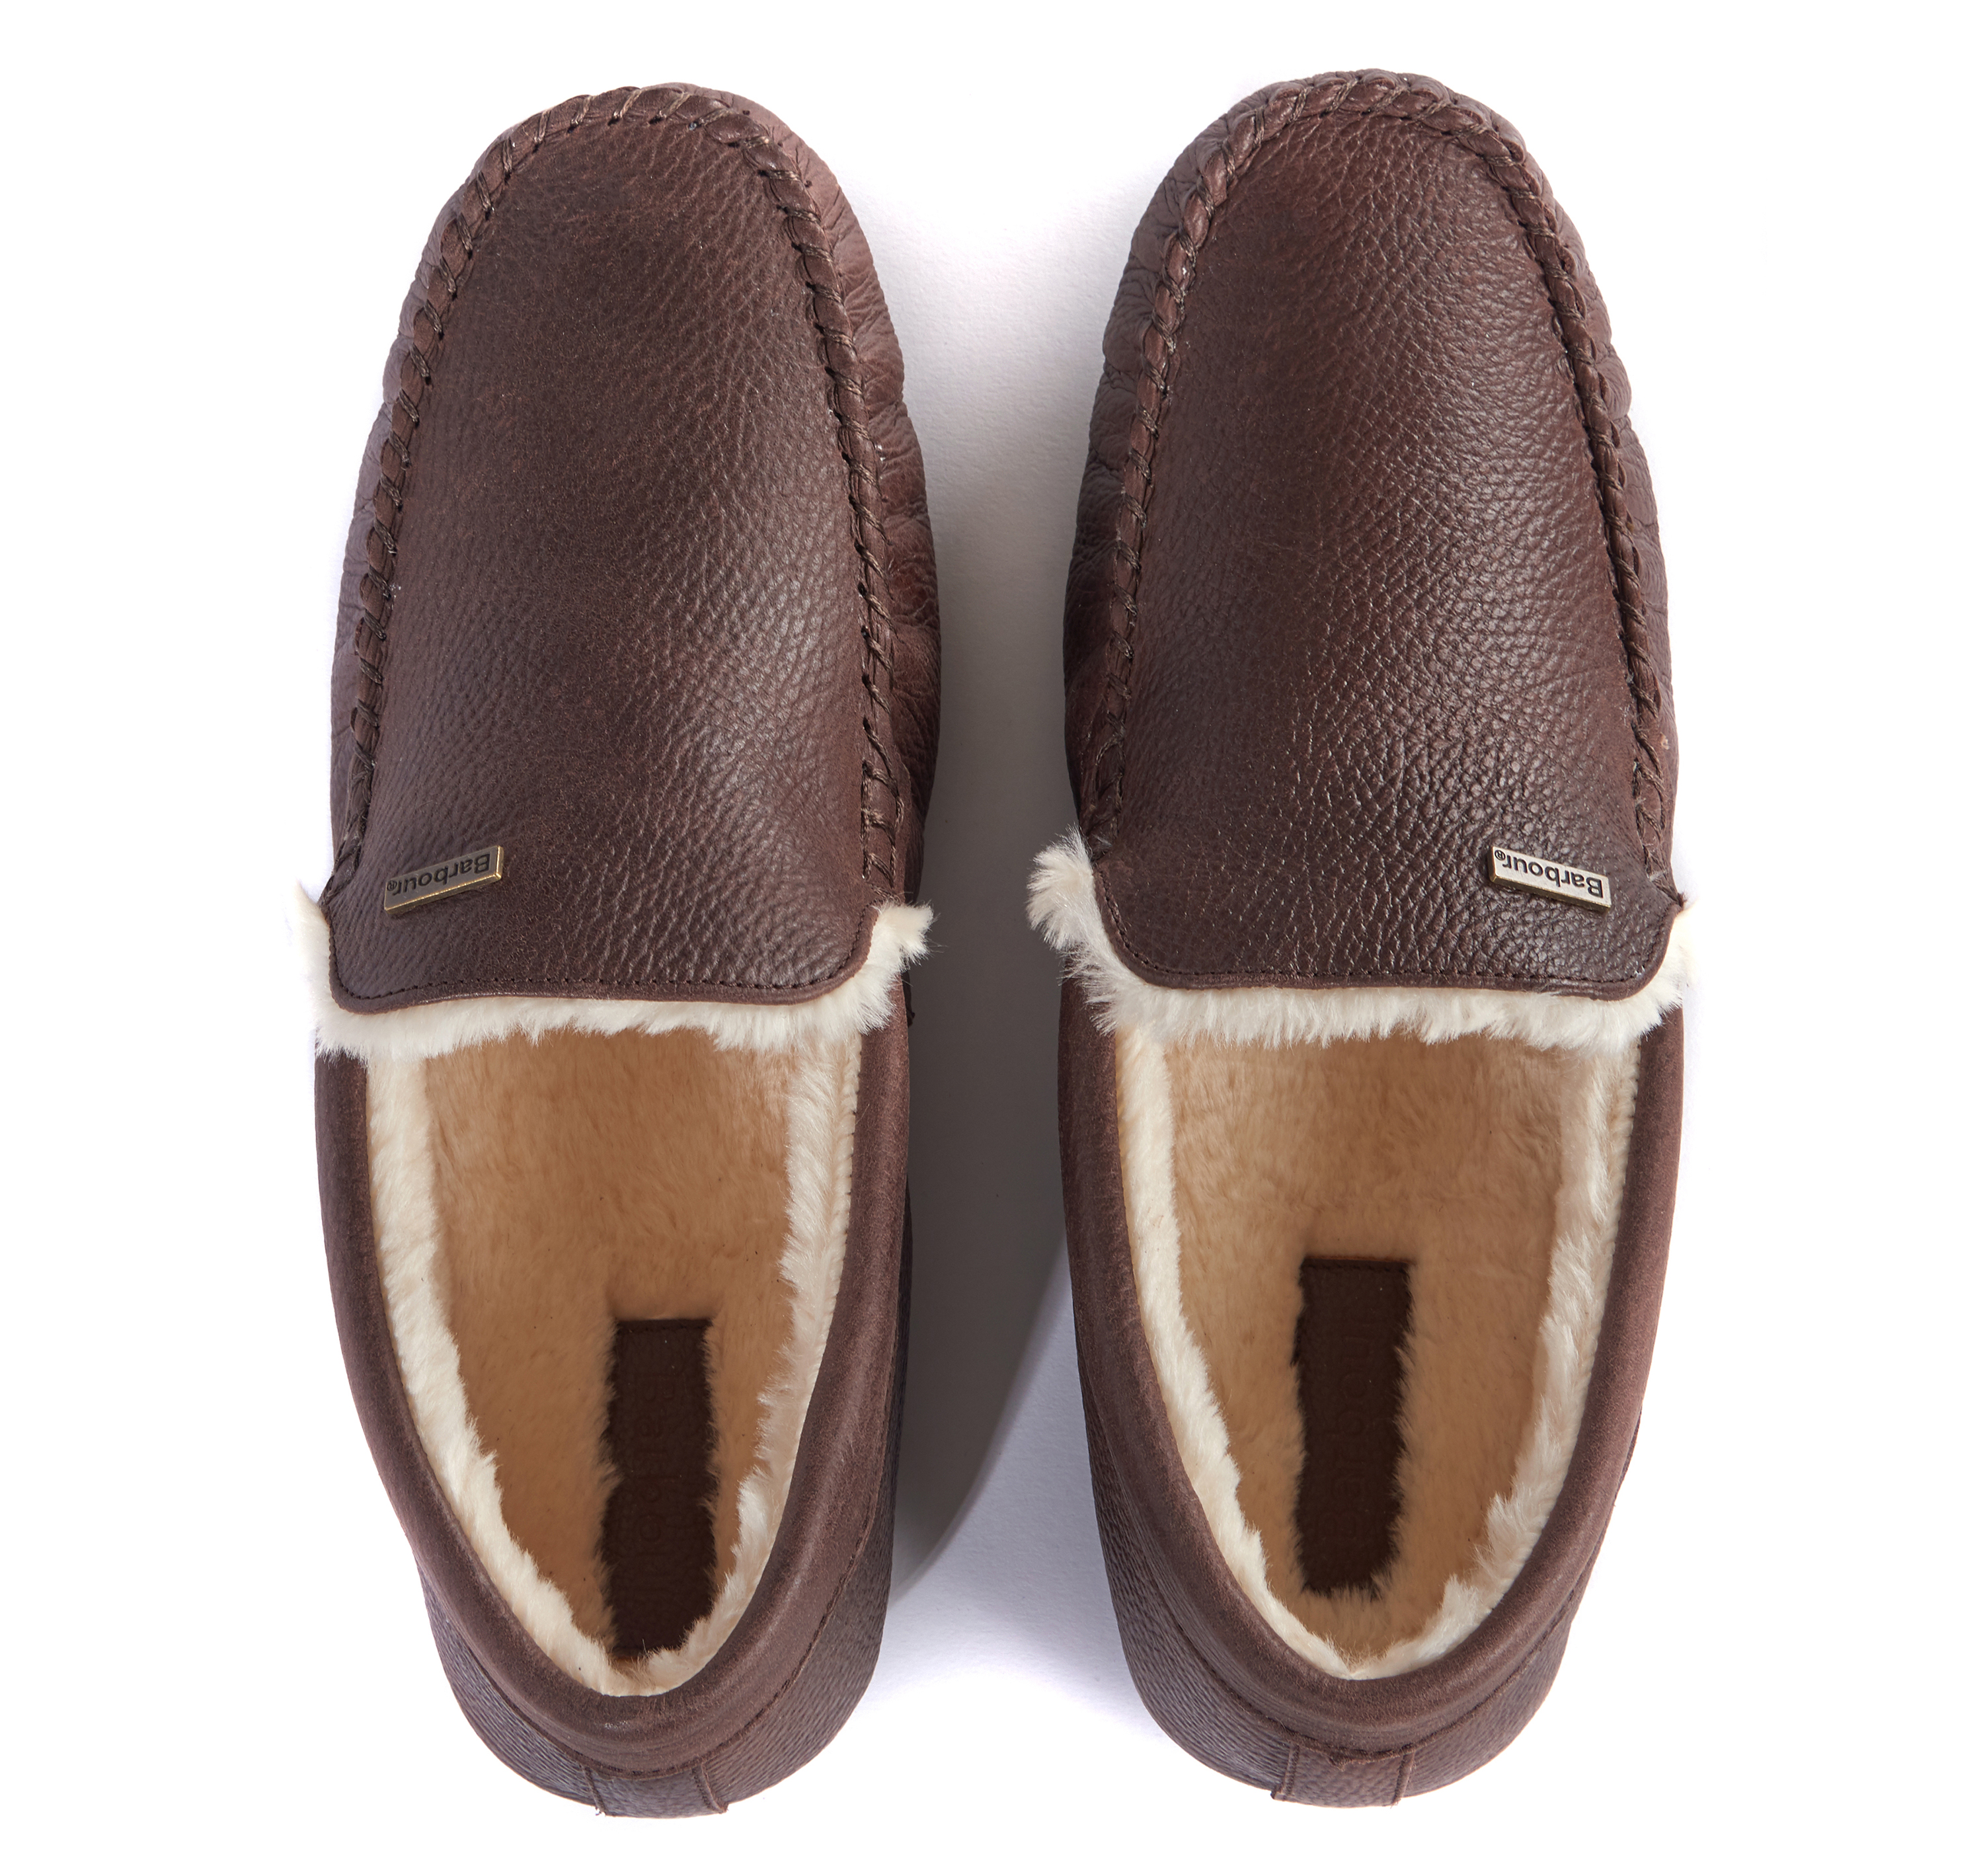 db64a90a43d2 Barbour Monty Moccasin Leather Slippers